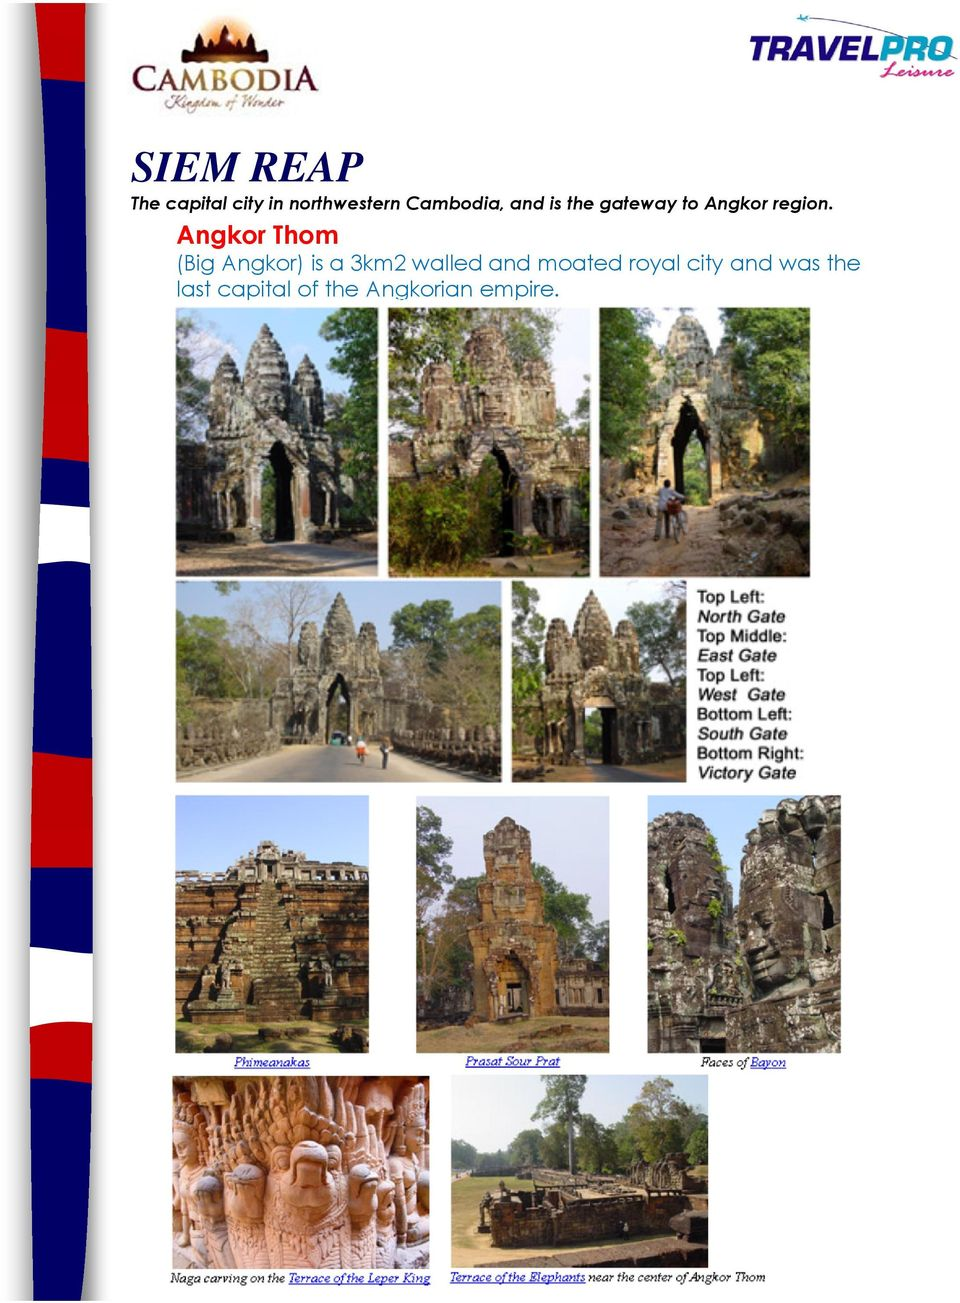 Angkor Thom (Big Angkor) is a 3km2 walled and